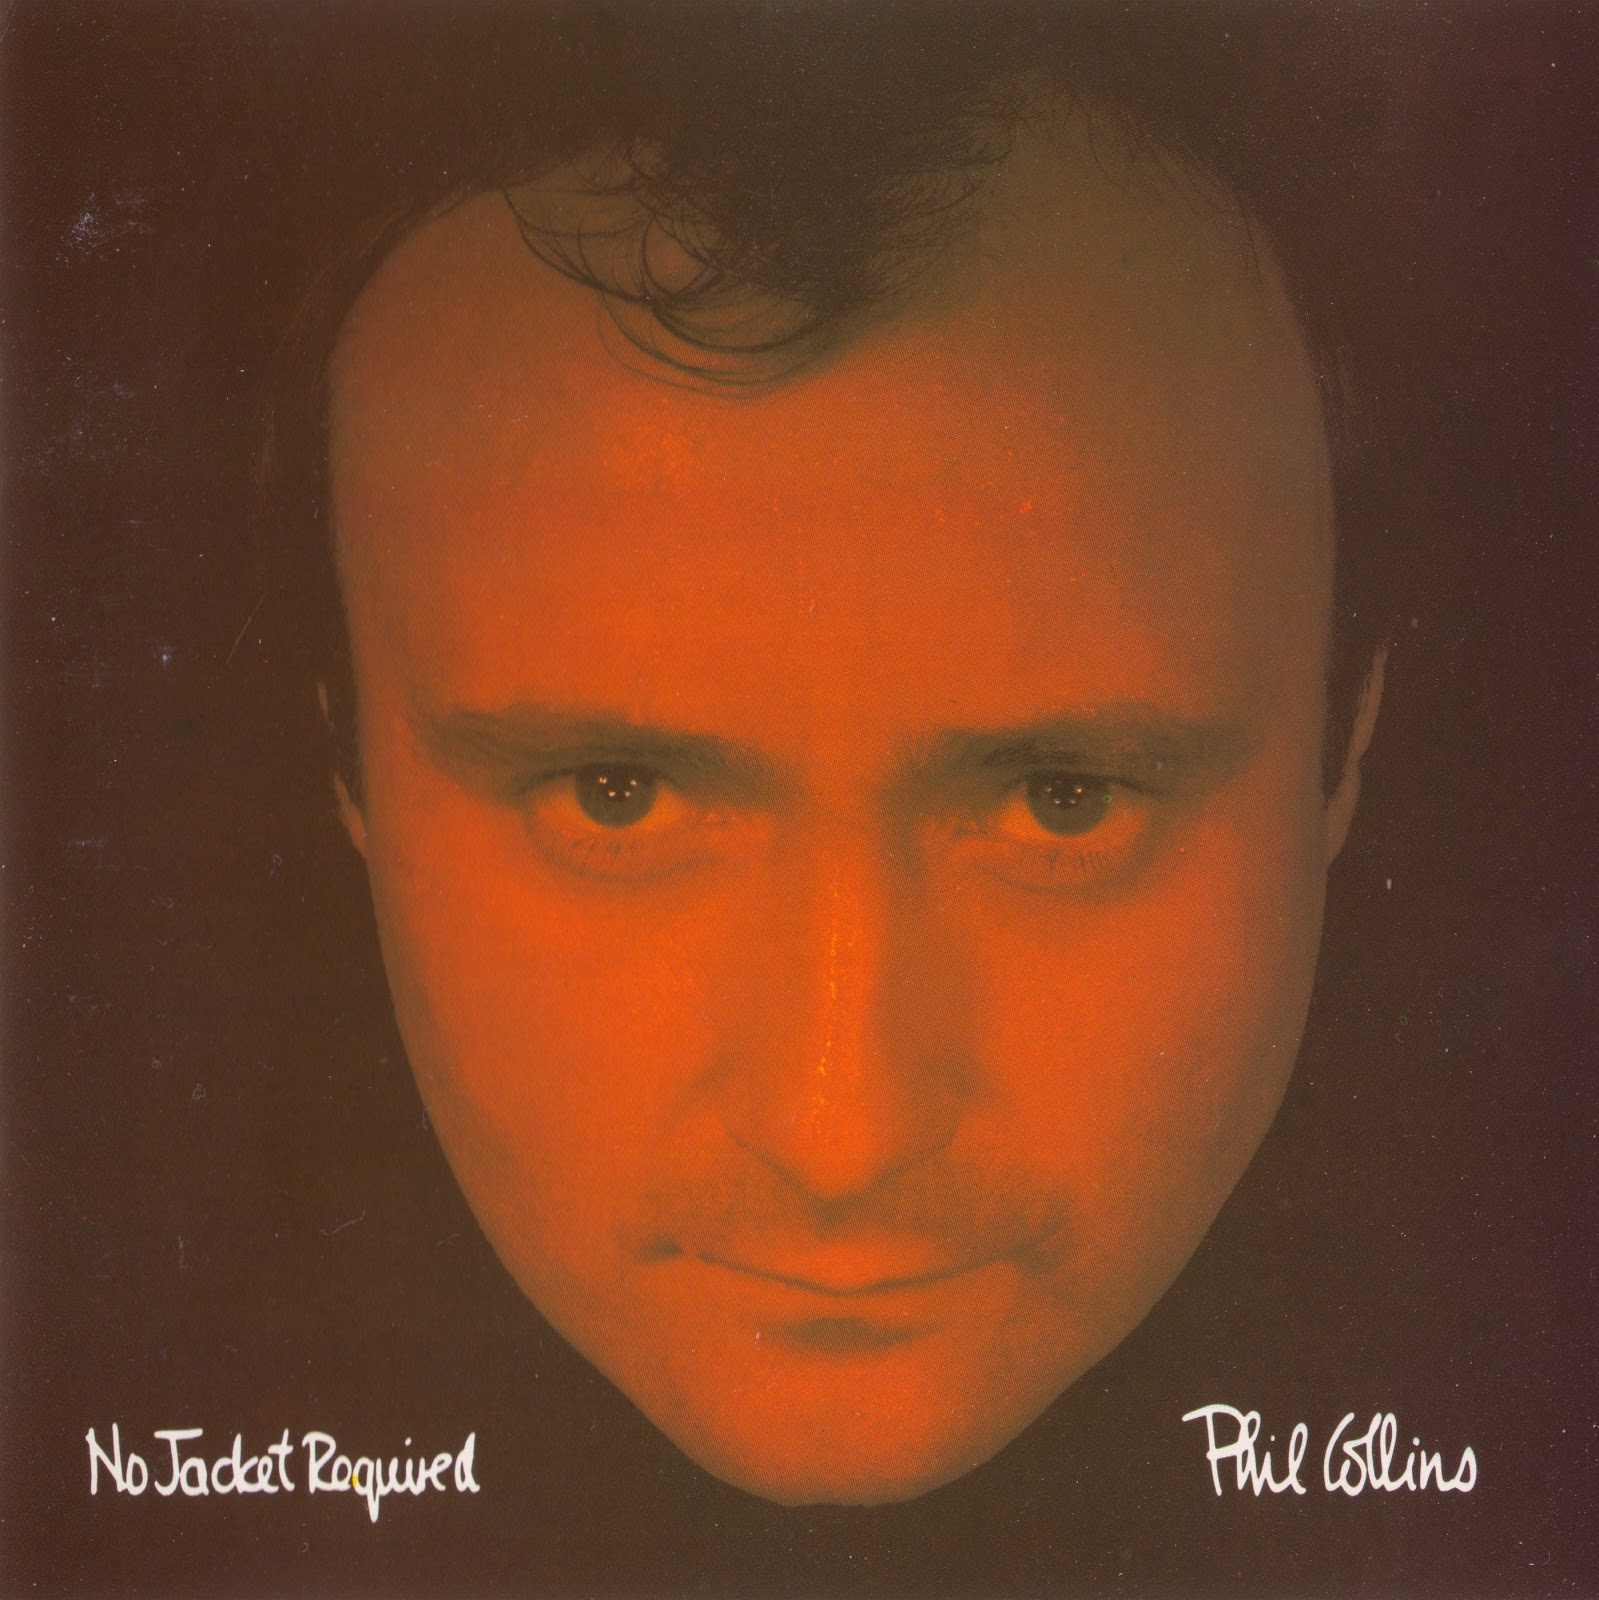 http://4.bp.blogspot.com/-7XwAQ0xBTOY/TZ9O6AeNvfI/AAAAAAAAHXw/1Epm1xuyf7w/s1600/Phil_Collins_No_Jacket_Required_front.jpg